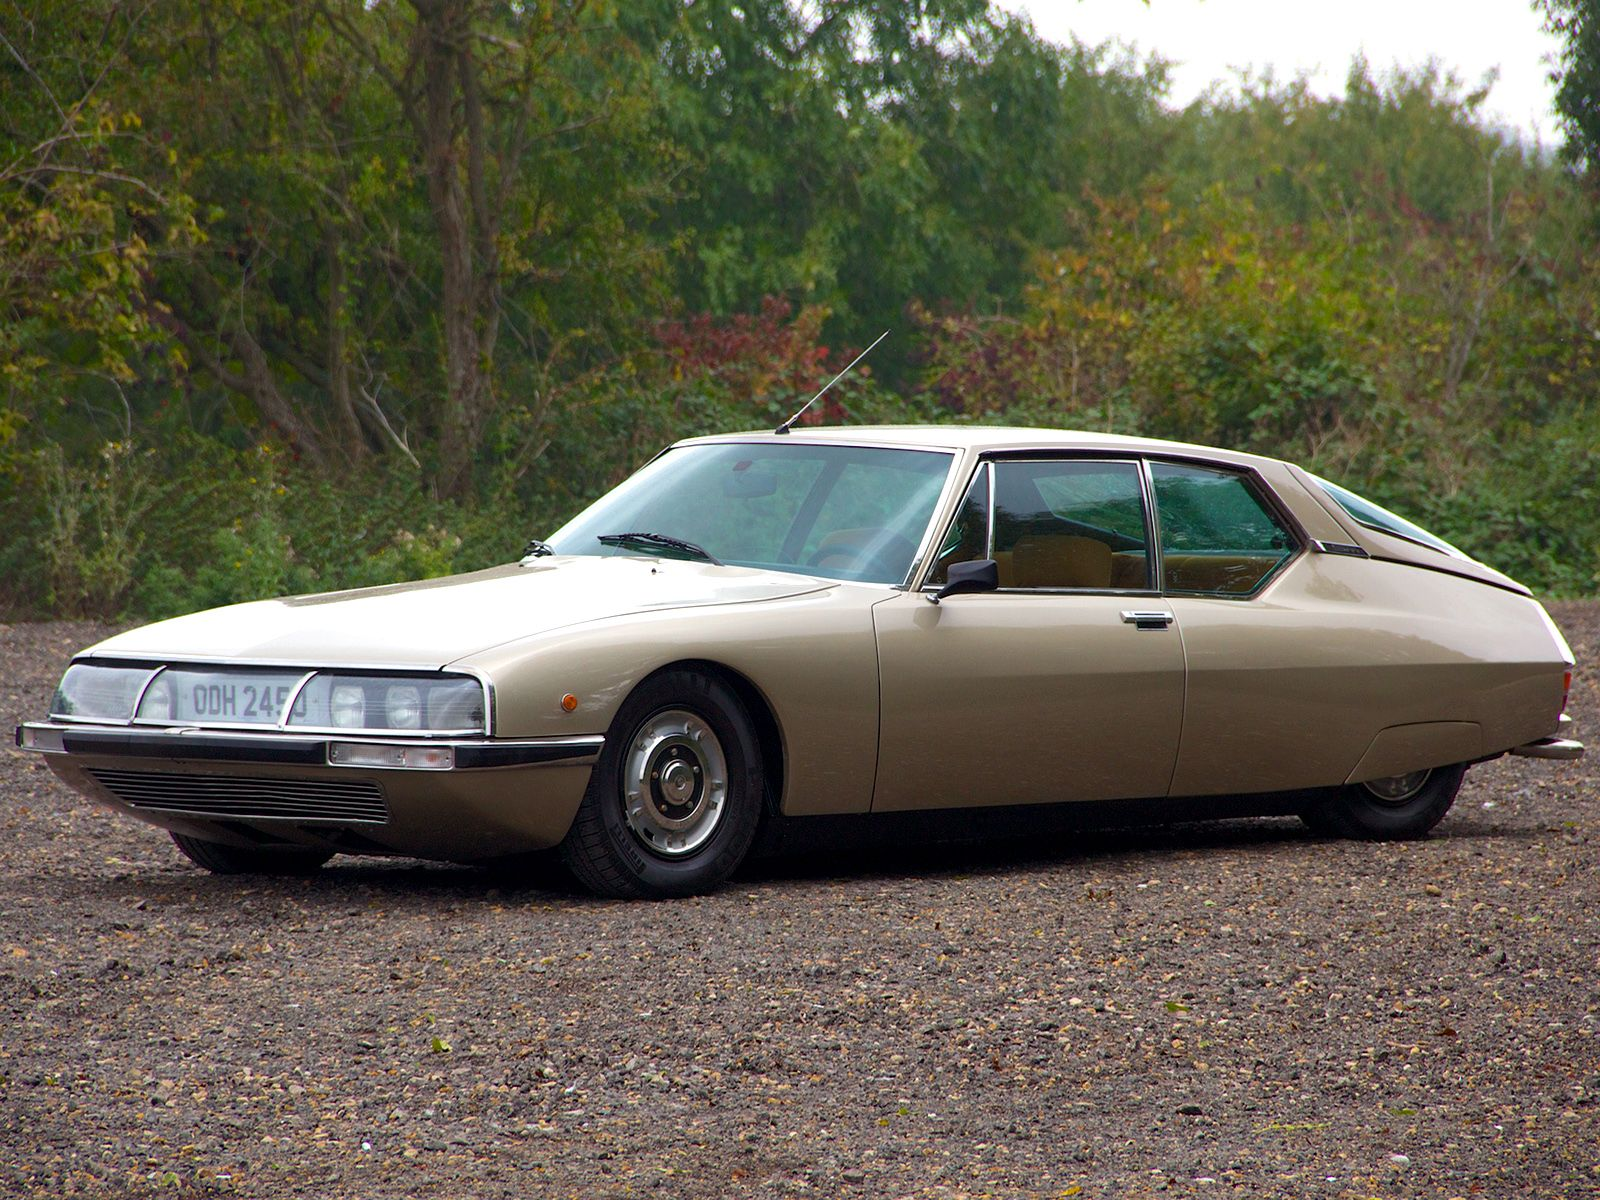 Looking for the citroen sm of your dreams there are currently 8503 citroen sm cars as well as thousands of other iconic classic and collectors cars for